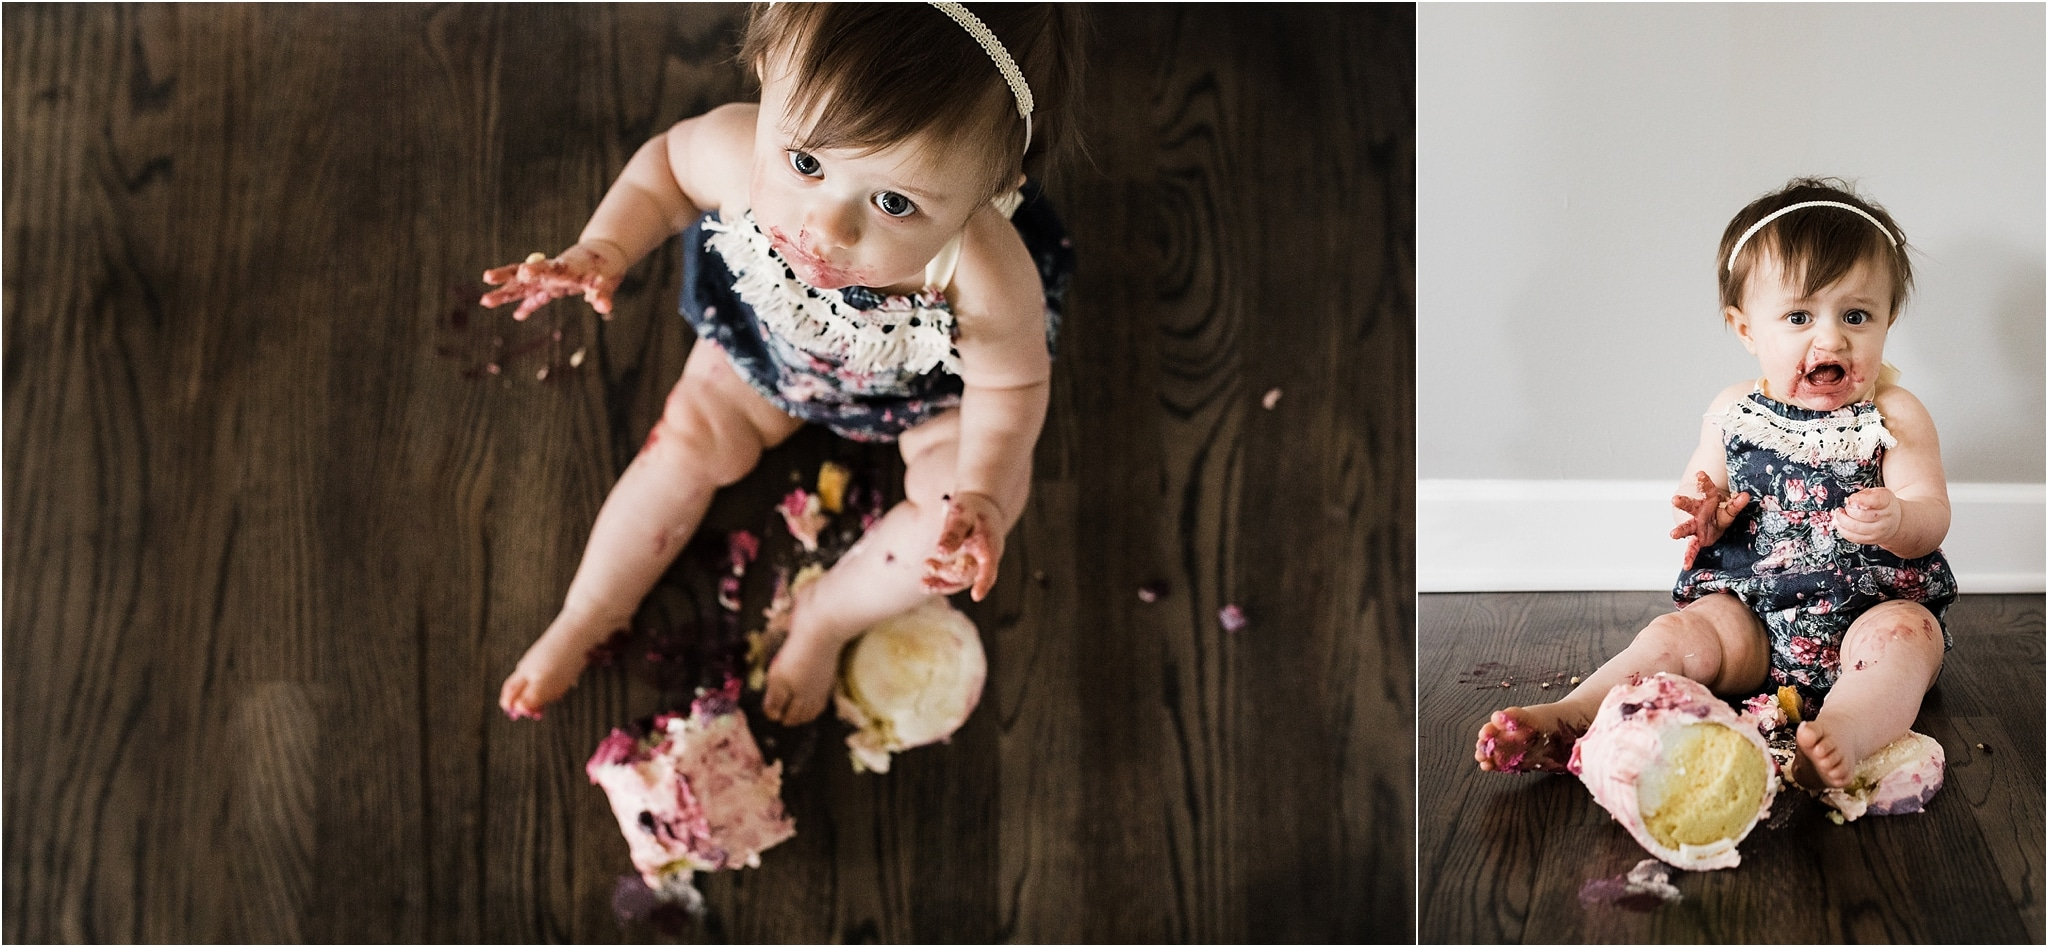 ONE YEAR OLD FLORAL SMASH CAKE AND ROMPER PHOTOS